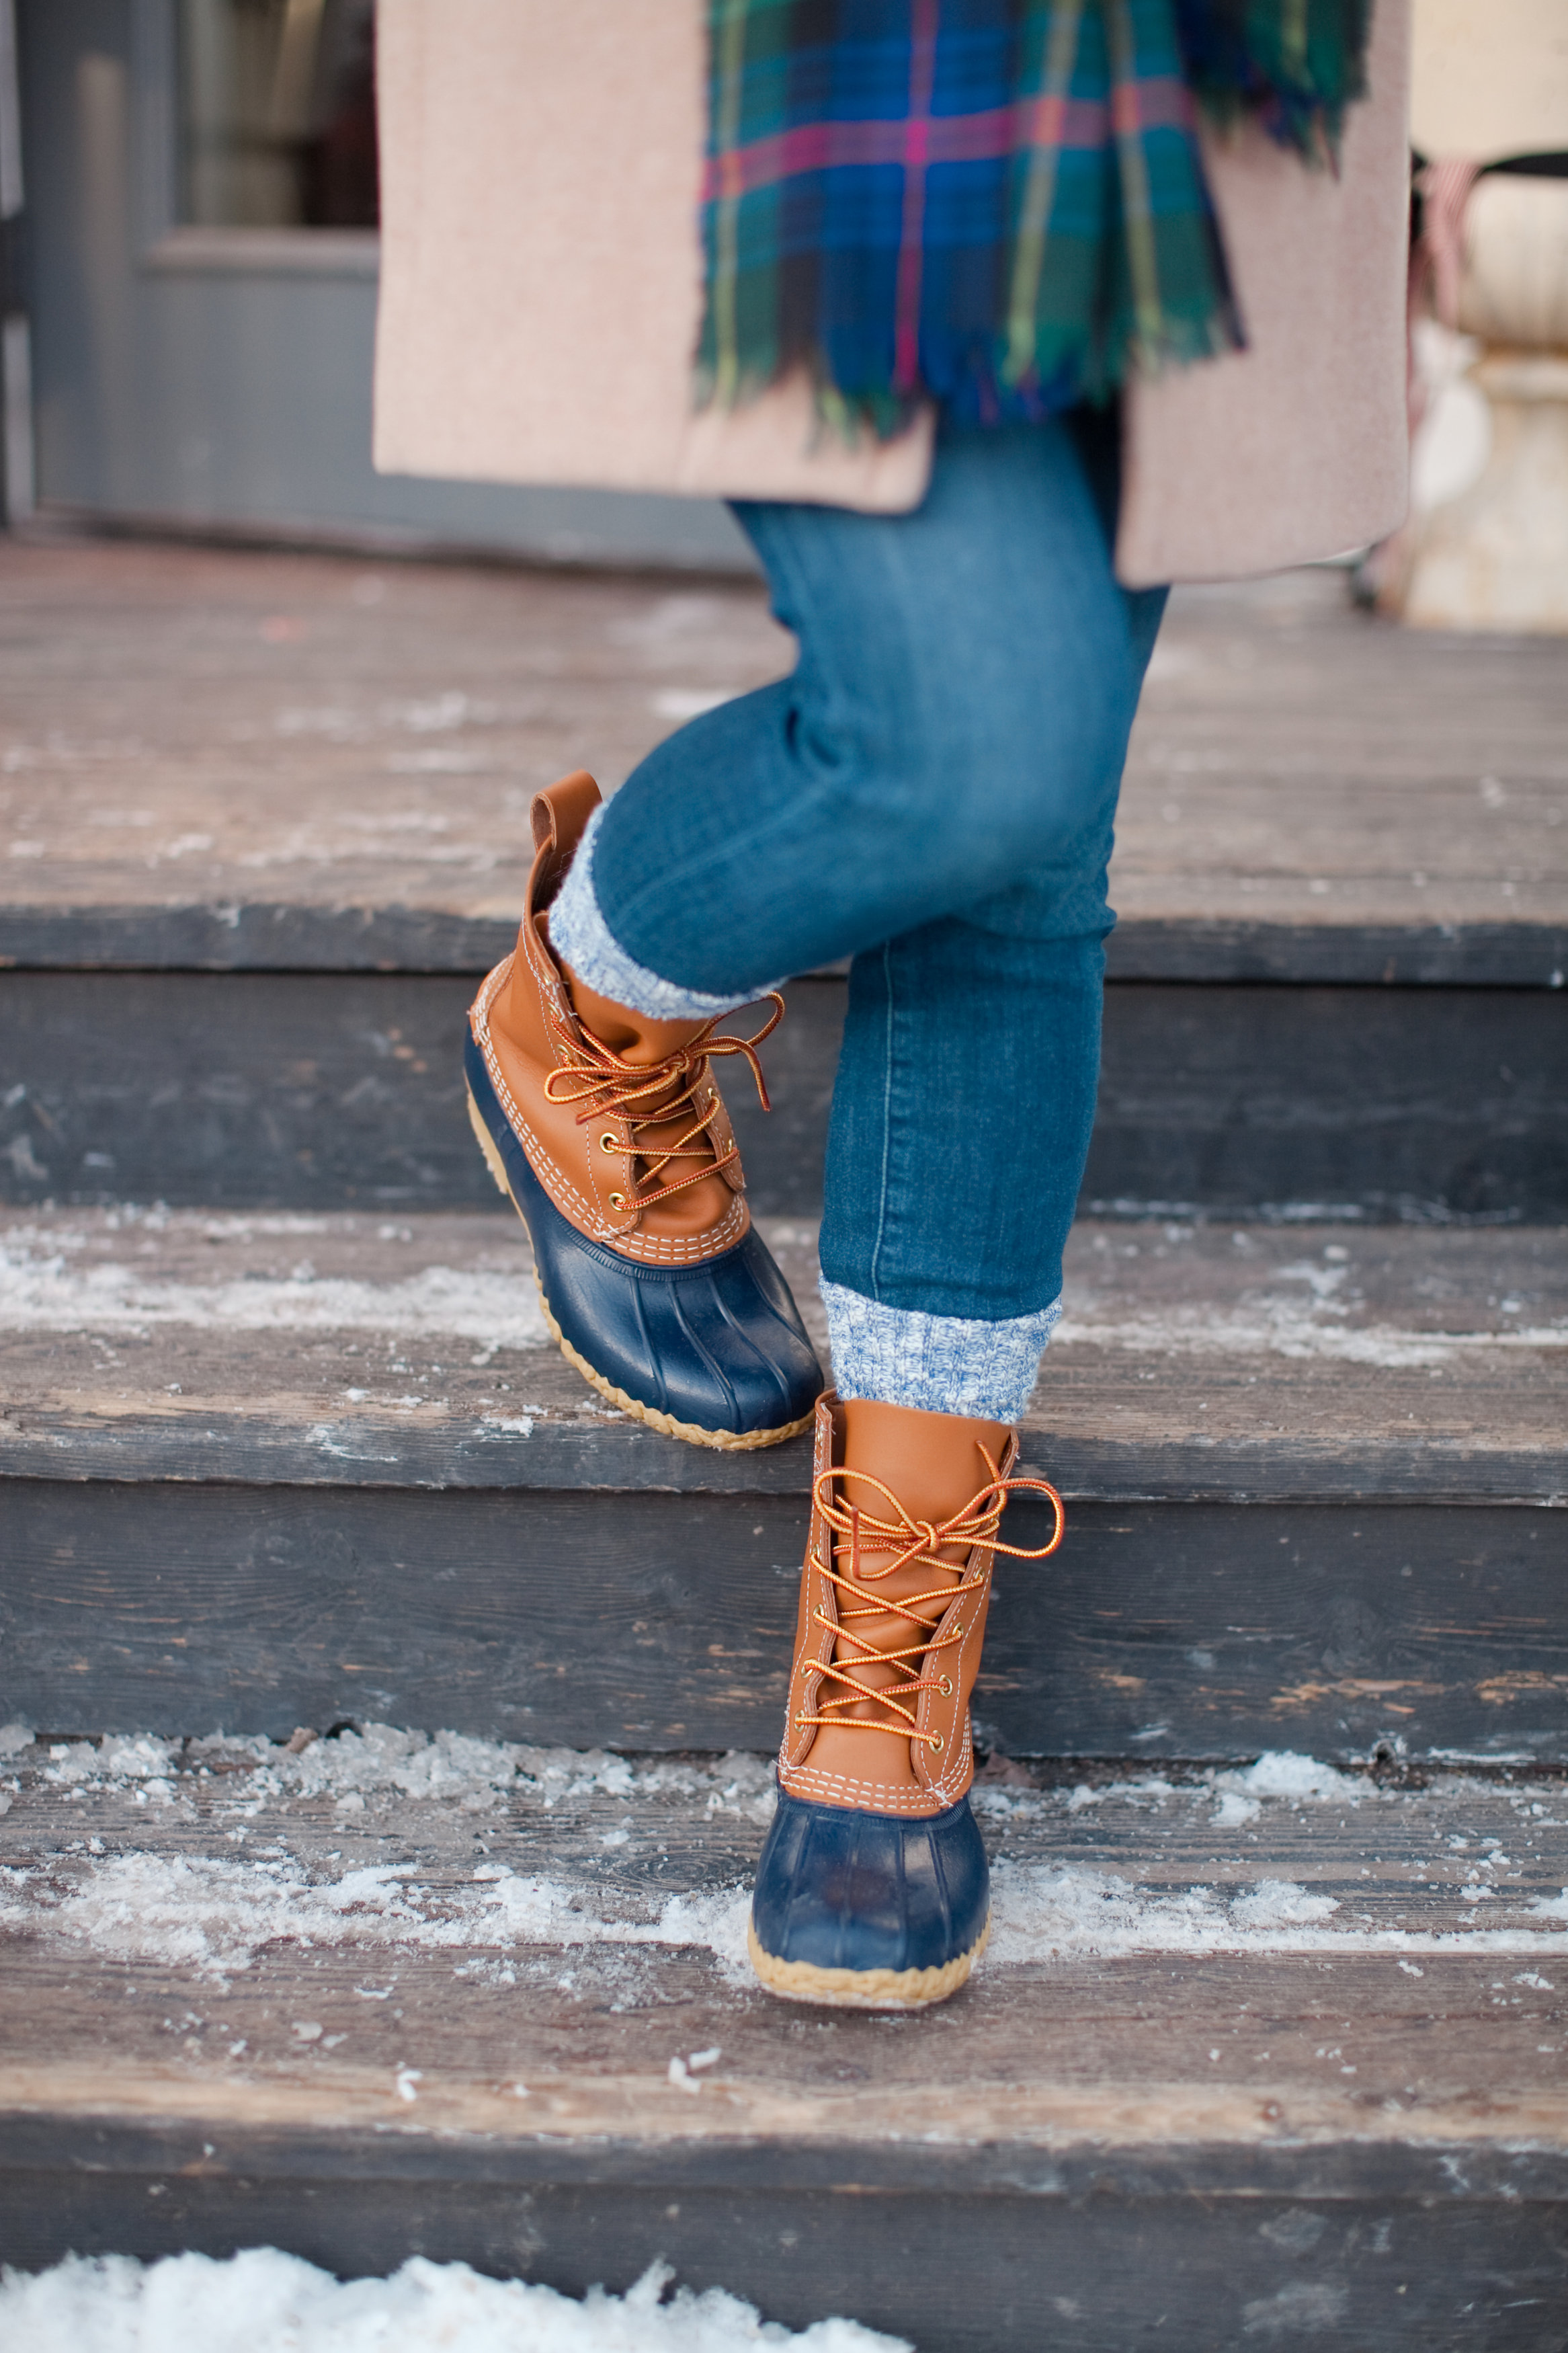 4618cd5c05a L.L. Bean Boots Style Guide + How to Wear the Iconic Boot